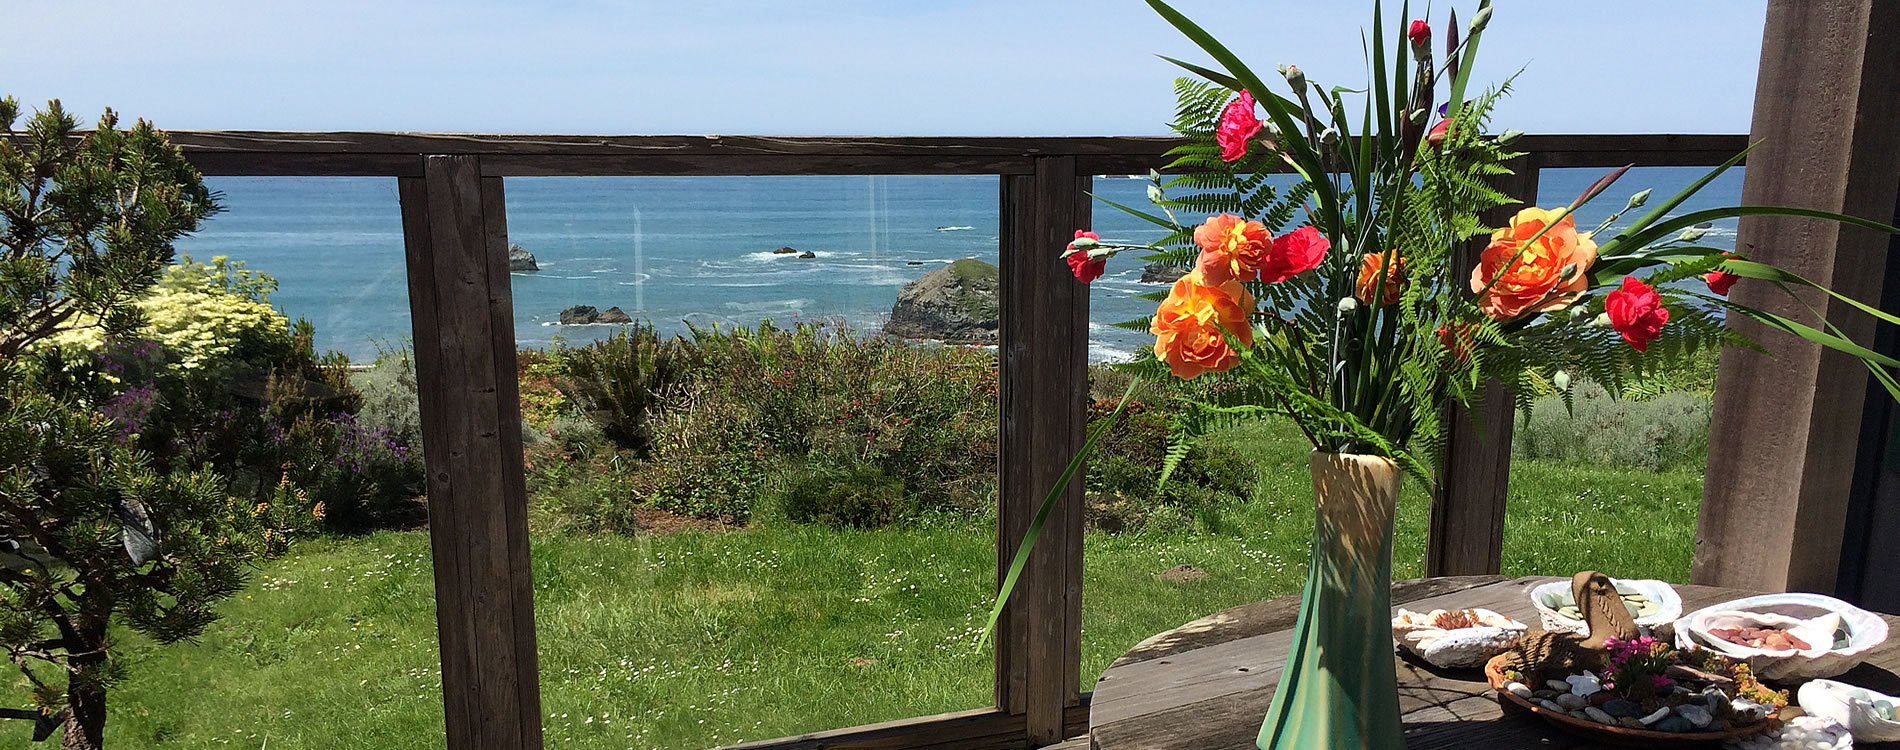 oceanview bed and breakfast northern callifornia coast